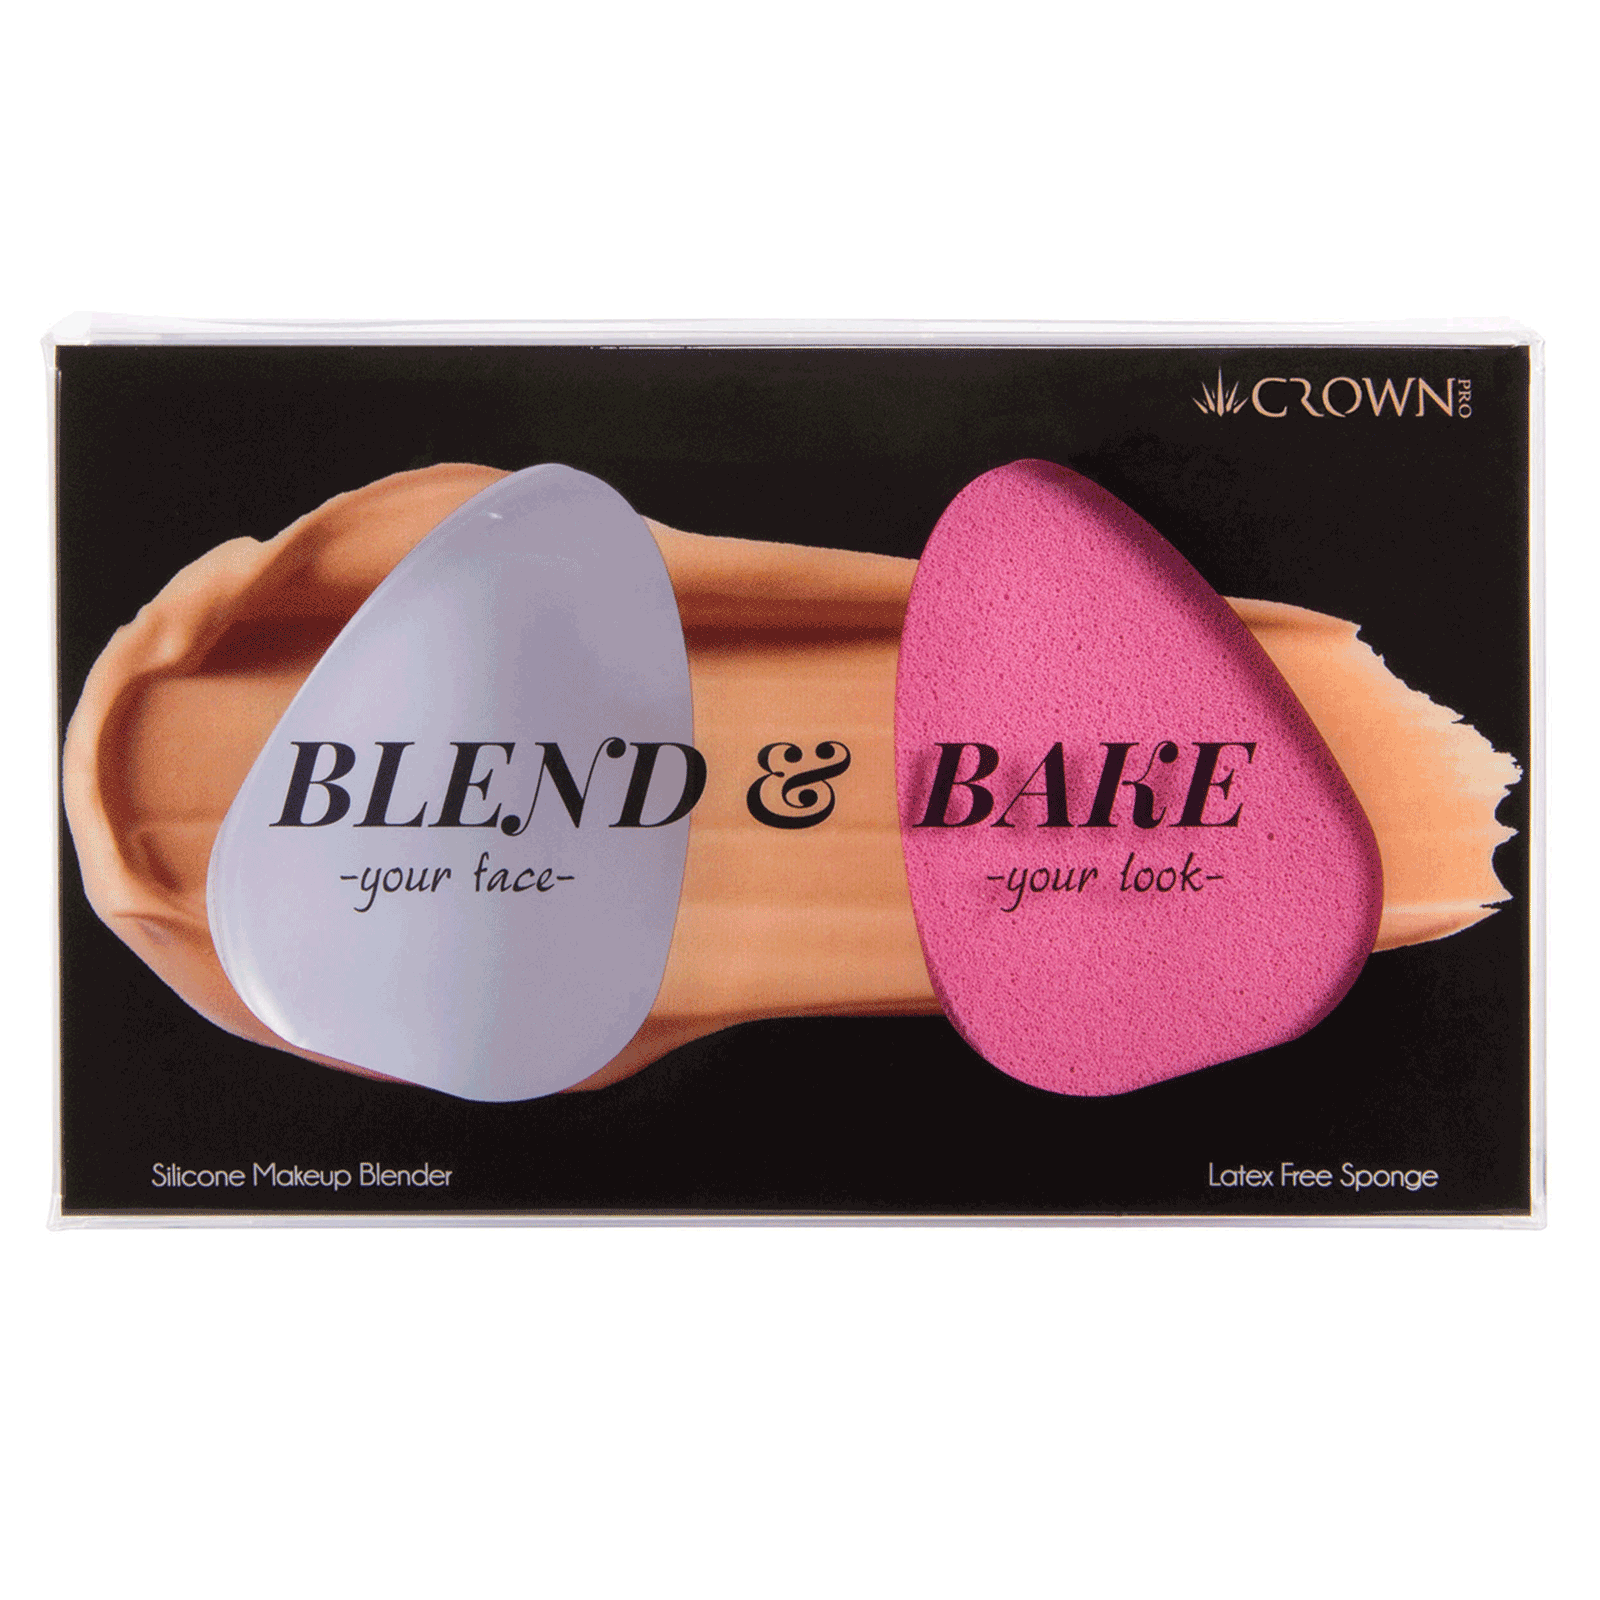 Blend and Bake Silicone & Blender Duo